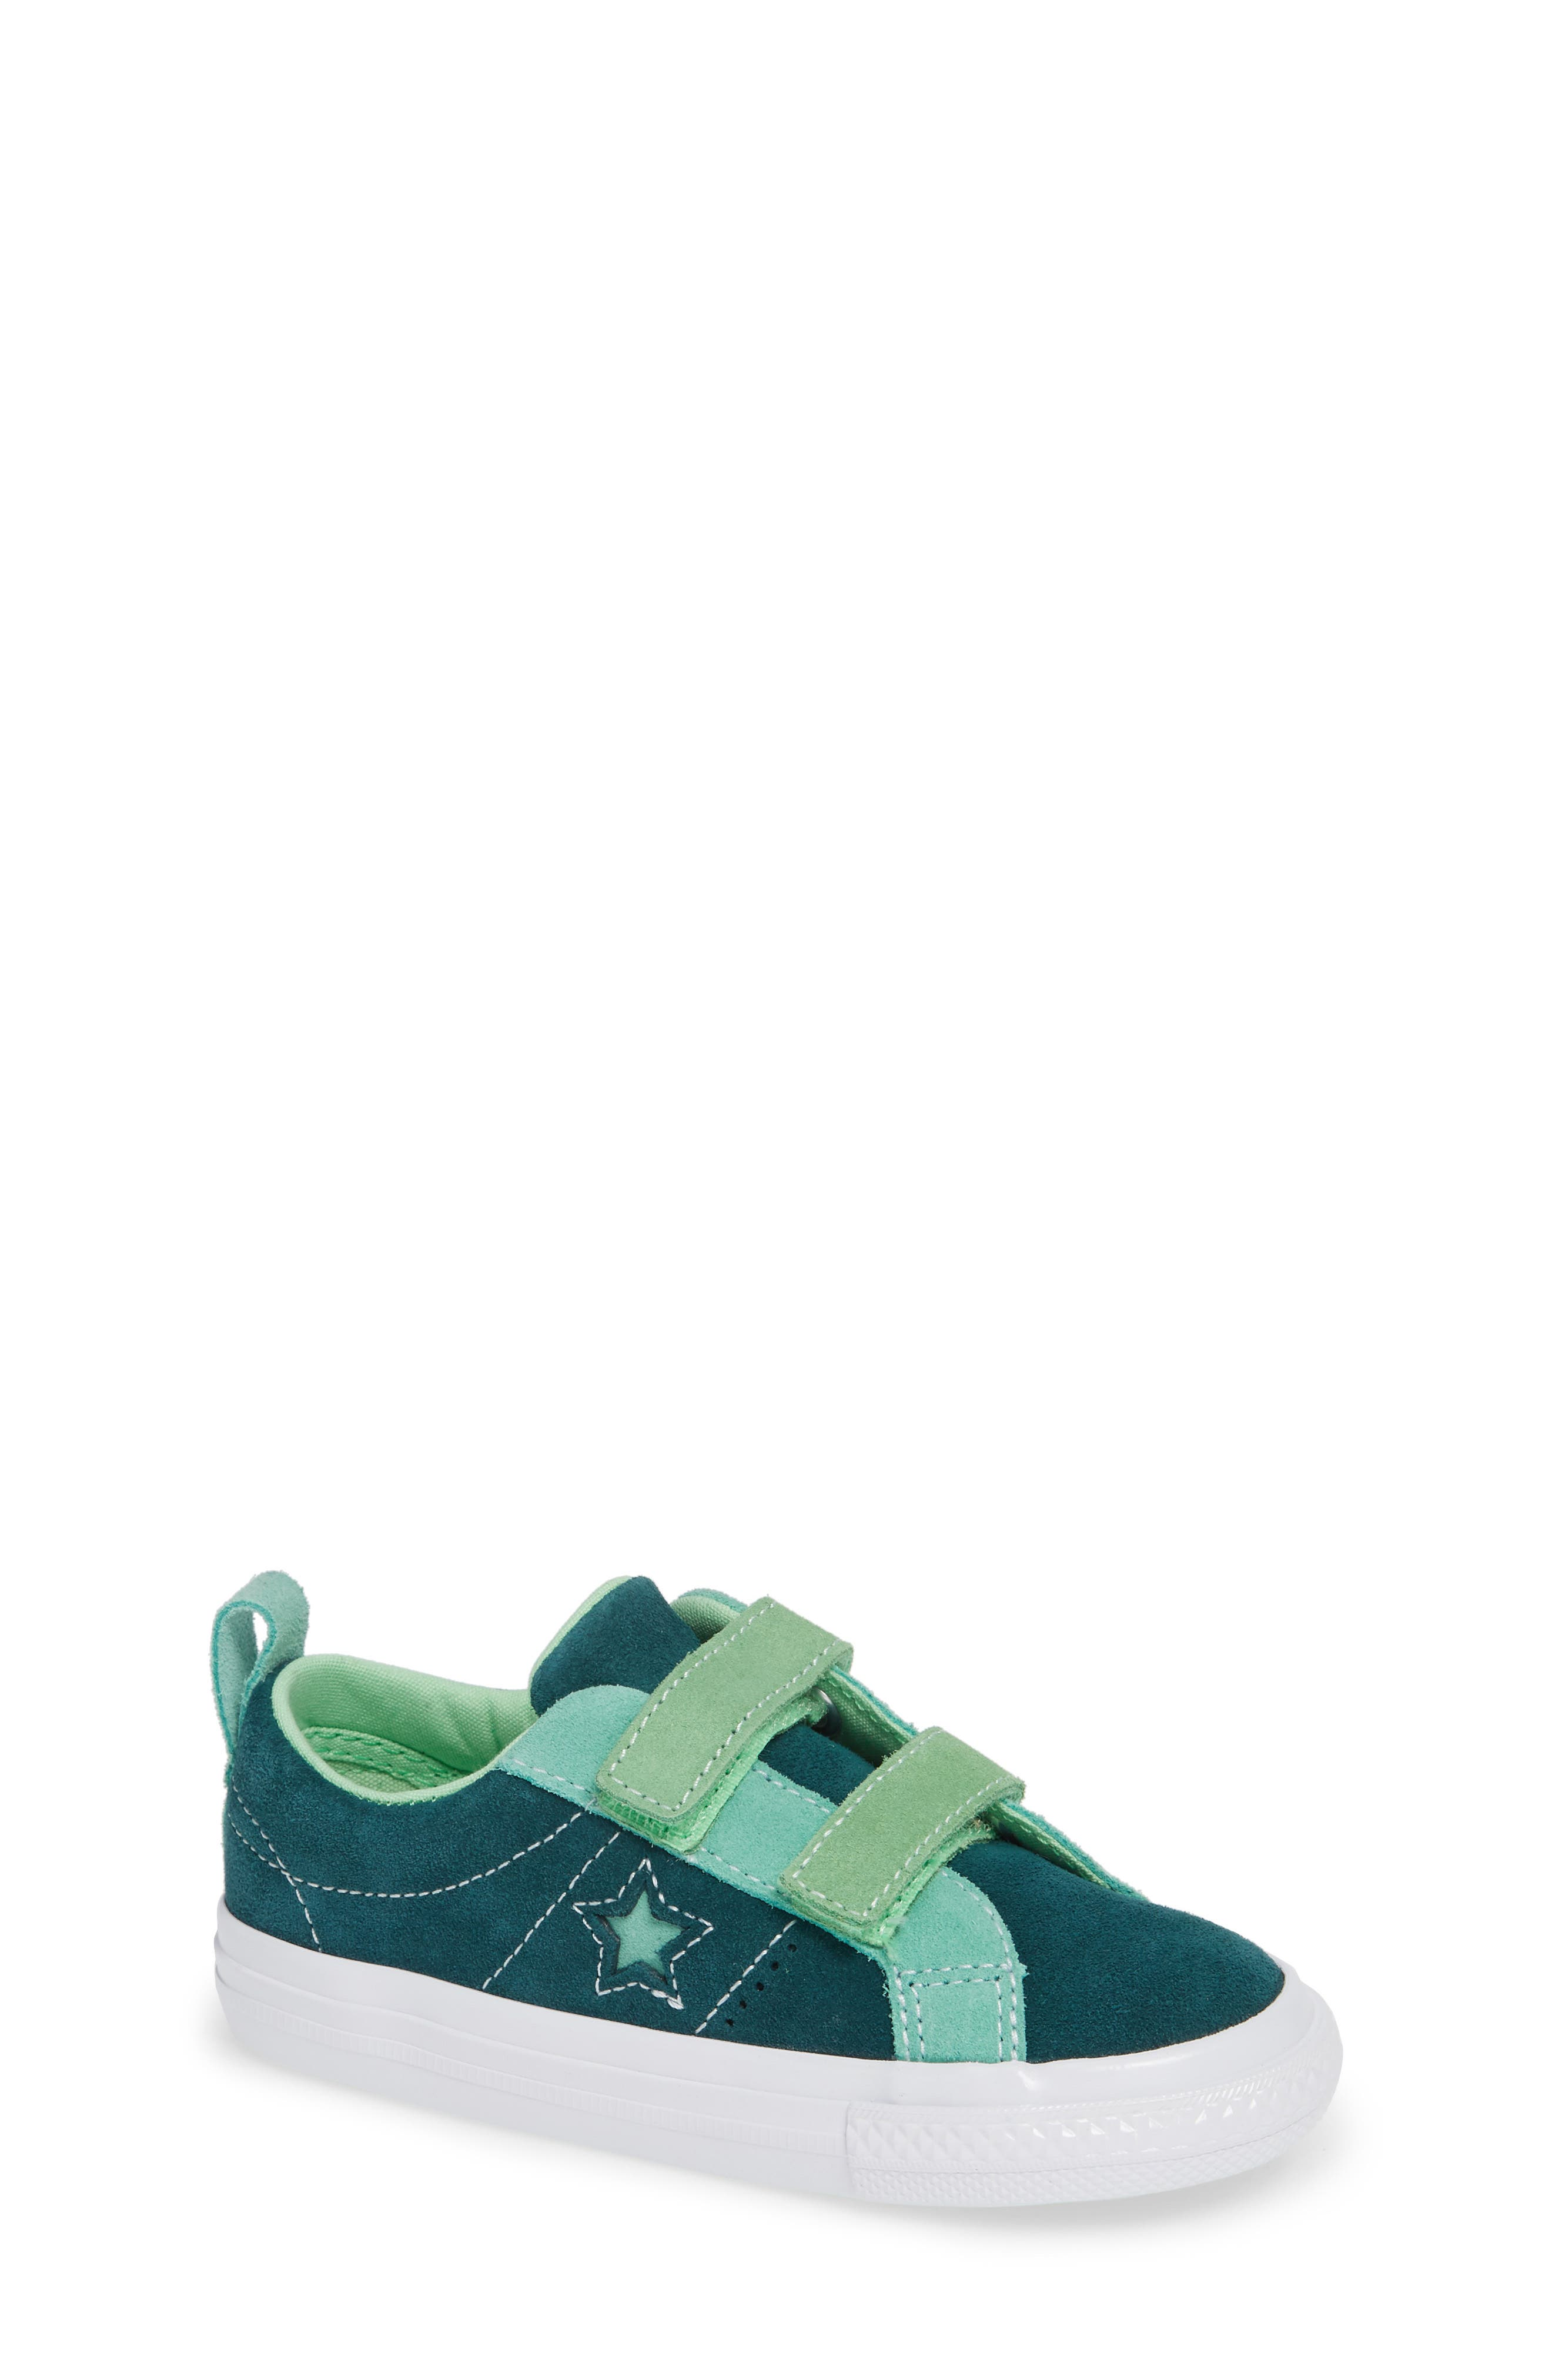 toddler boy's converse one star carnival 2v sneakers, size 9 m - green